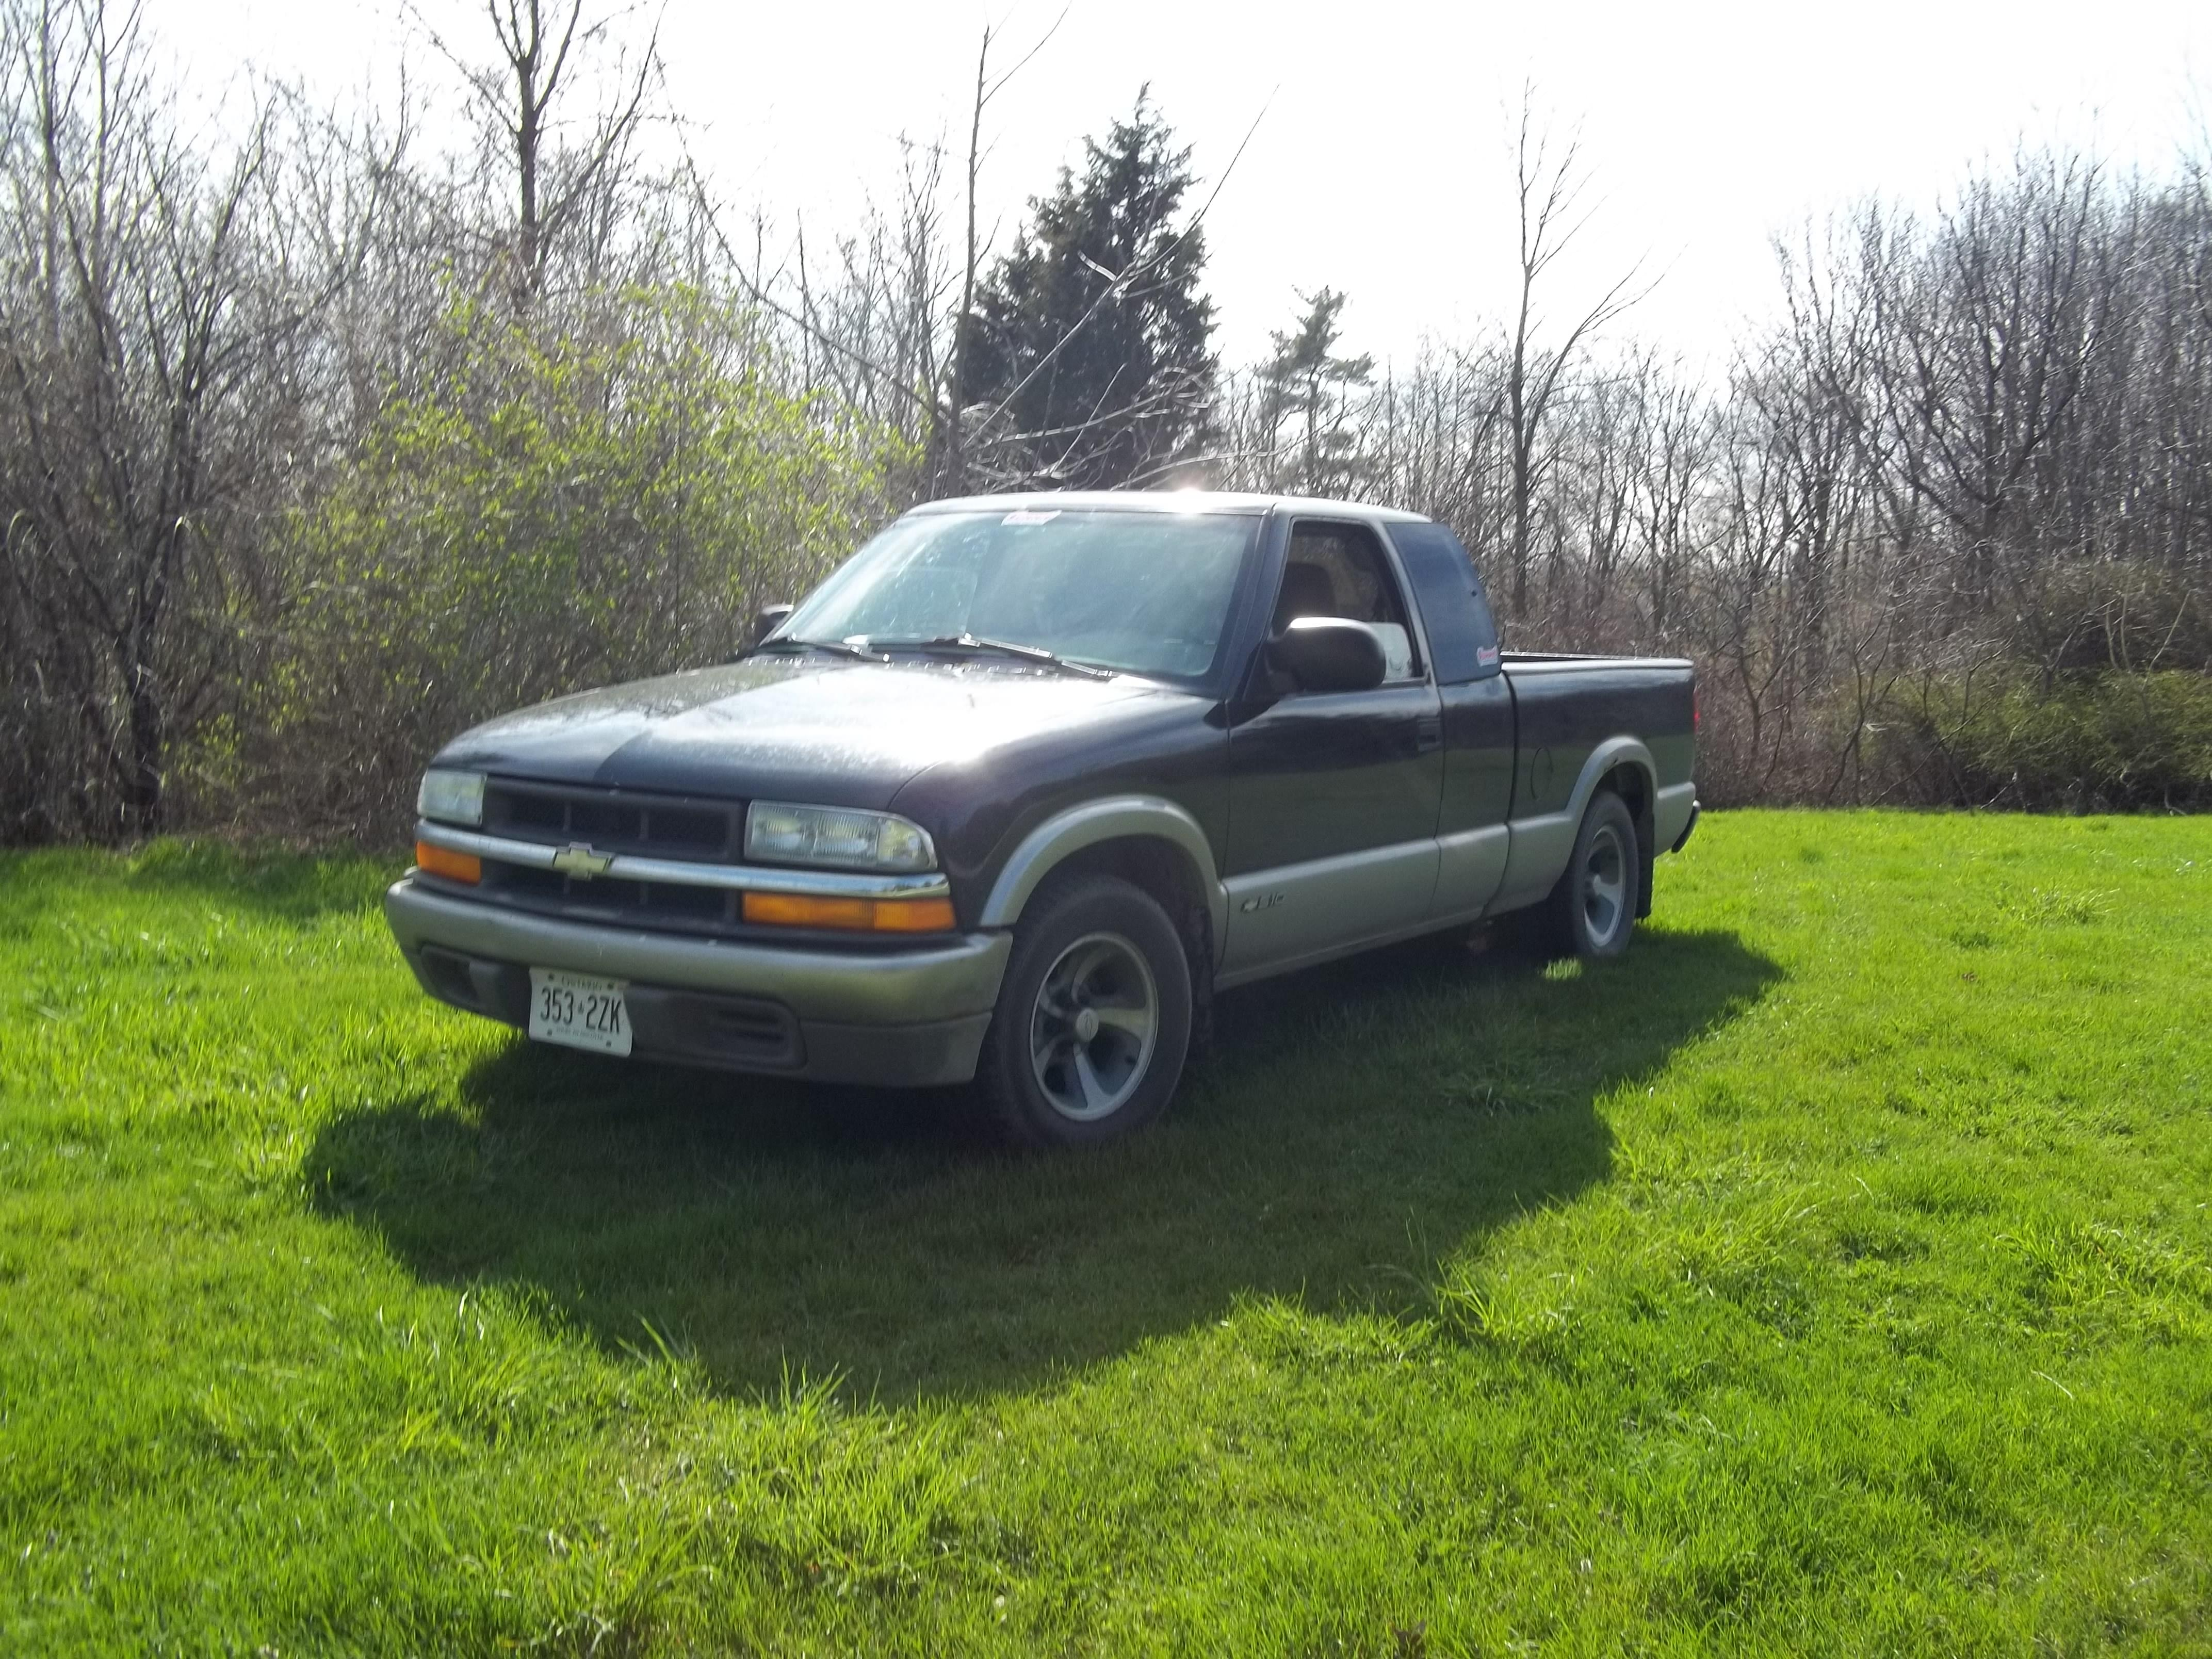 chevroletcavy 1999 Chevrolet S10 Extended Cab 15021011